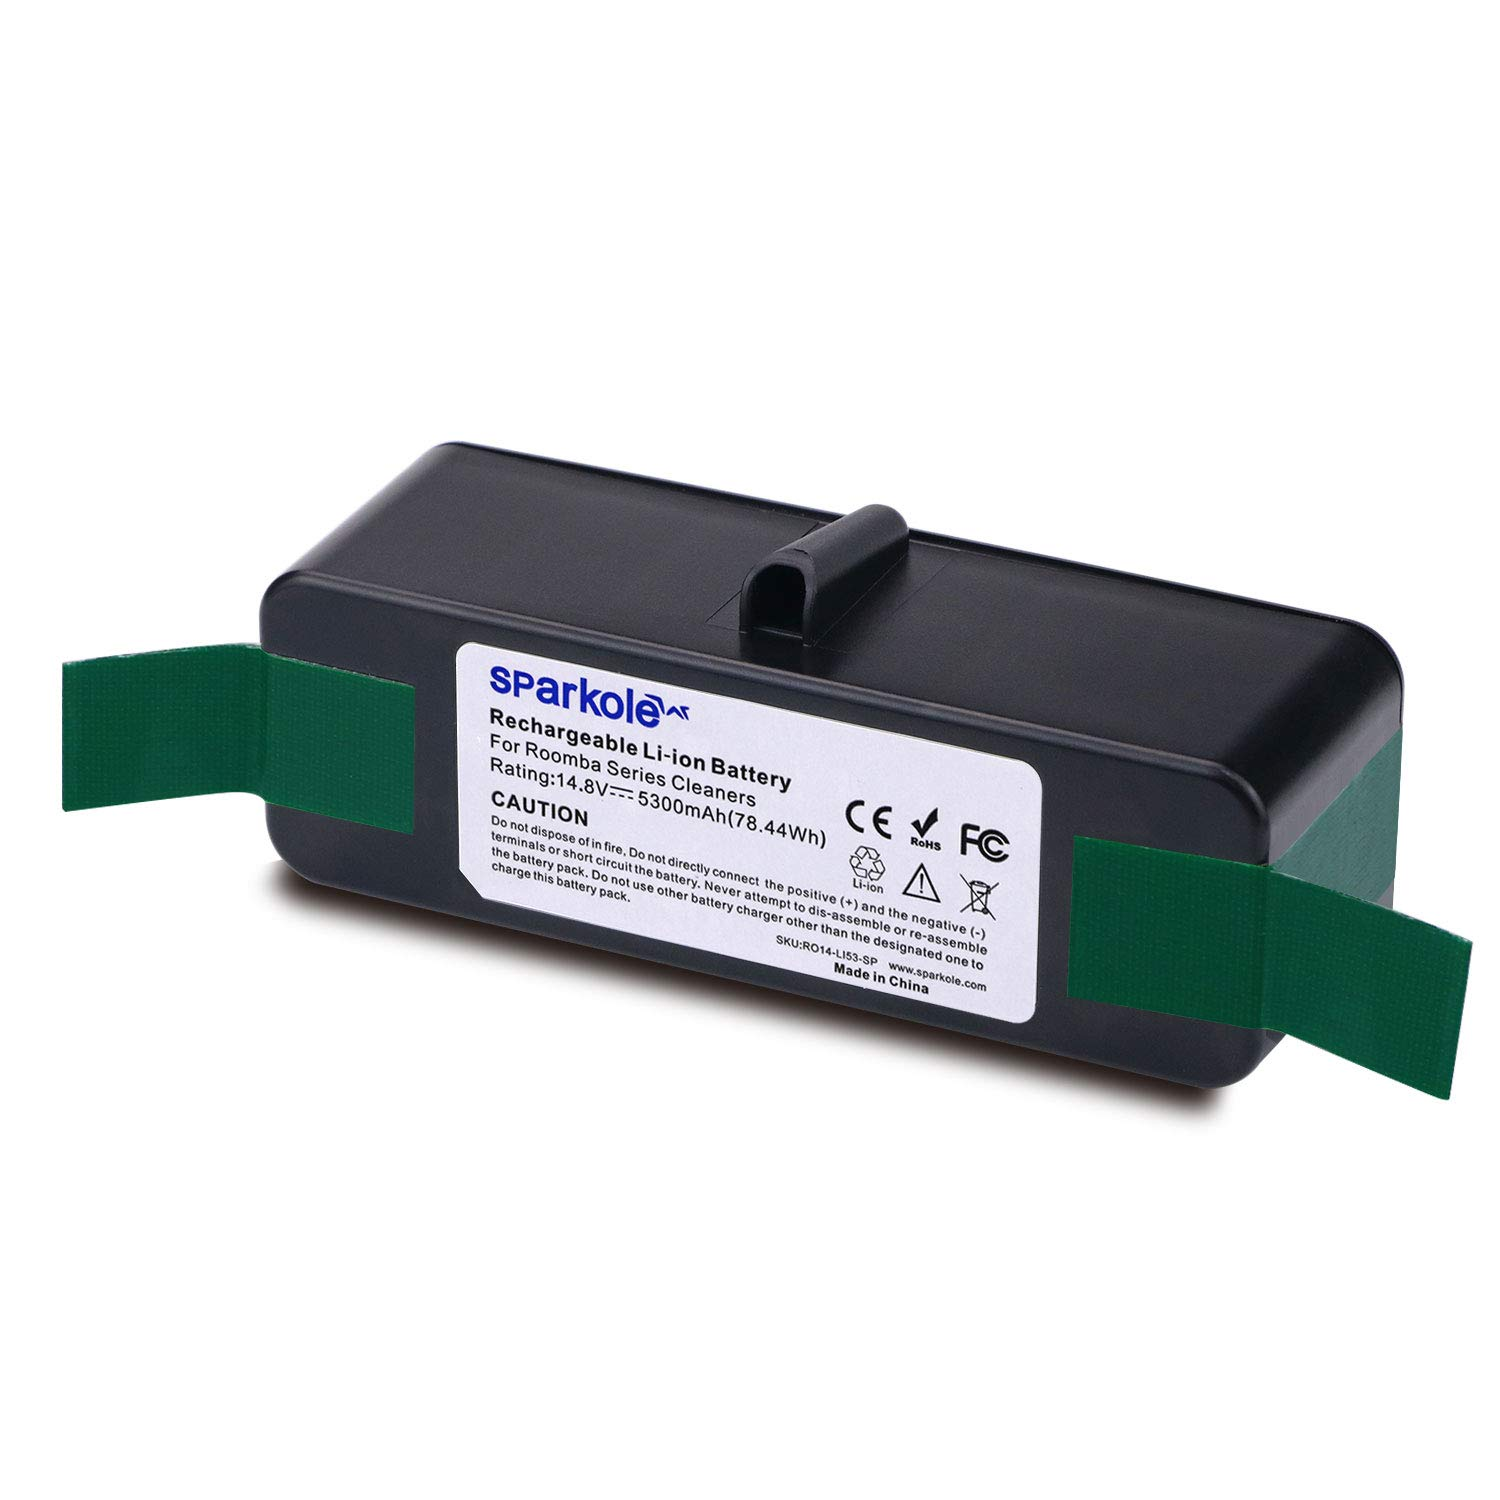 SPARKOLE 5300mAh Extended Life Lithium Ion Replacement Battery Compatible with iRobot Roomba 500,600,700,800 Series 500 510 530 531 581 585 595 600 630 645 650 655 675 700 760 770 780 800 870 880 890